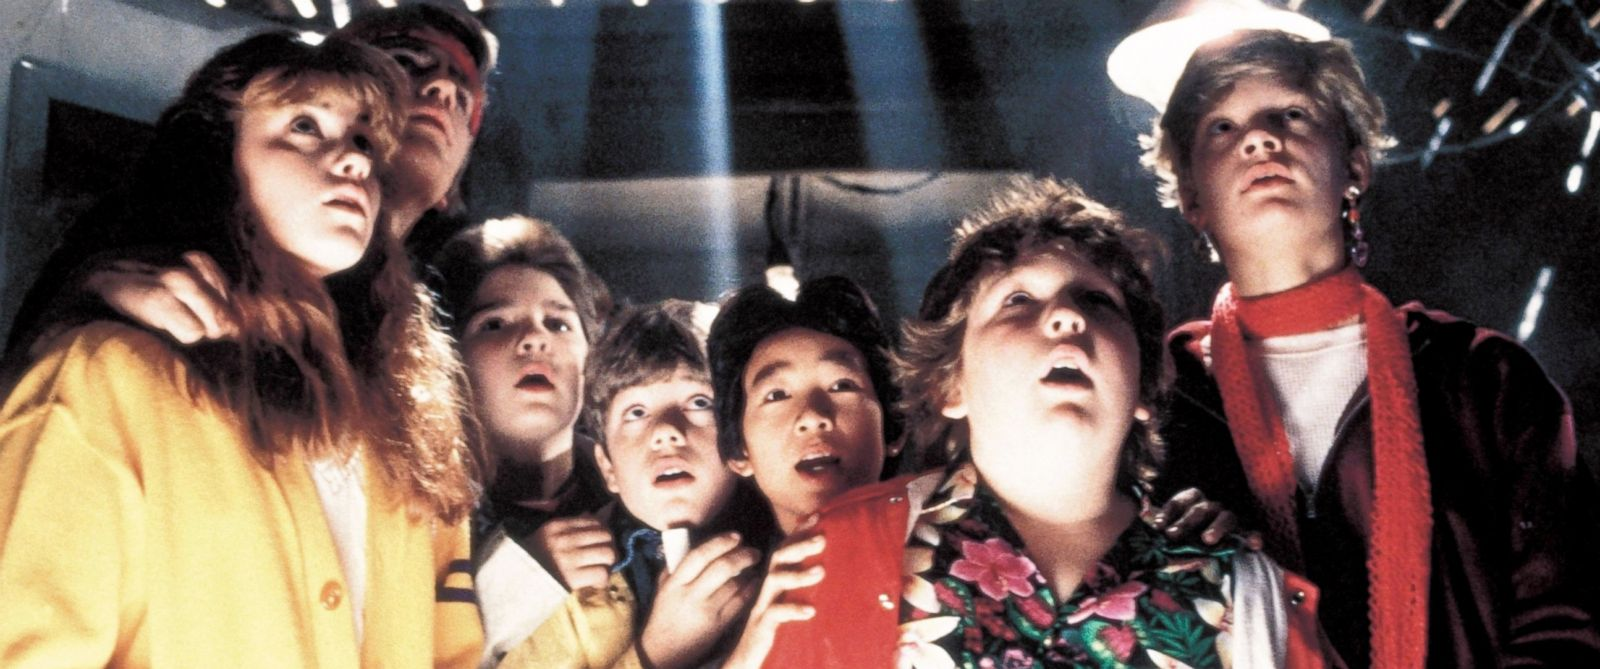 'The Goonies' Turns 30: Where Are They Now - ABC News